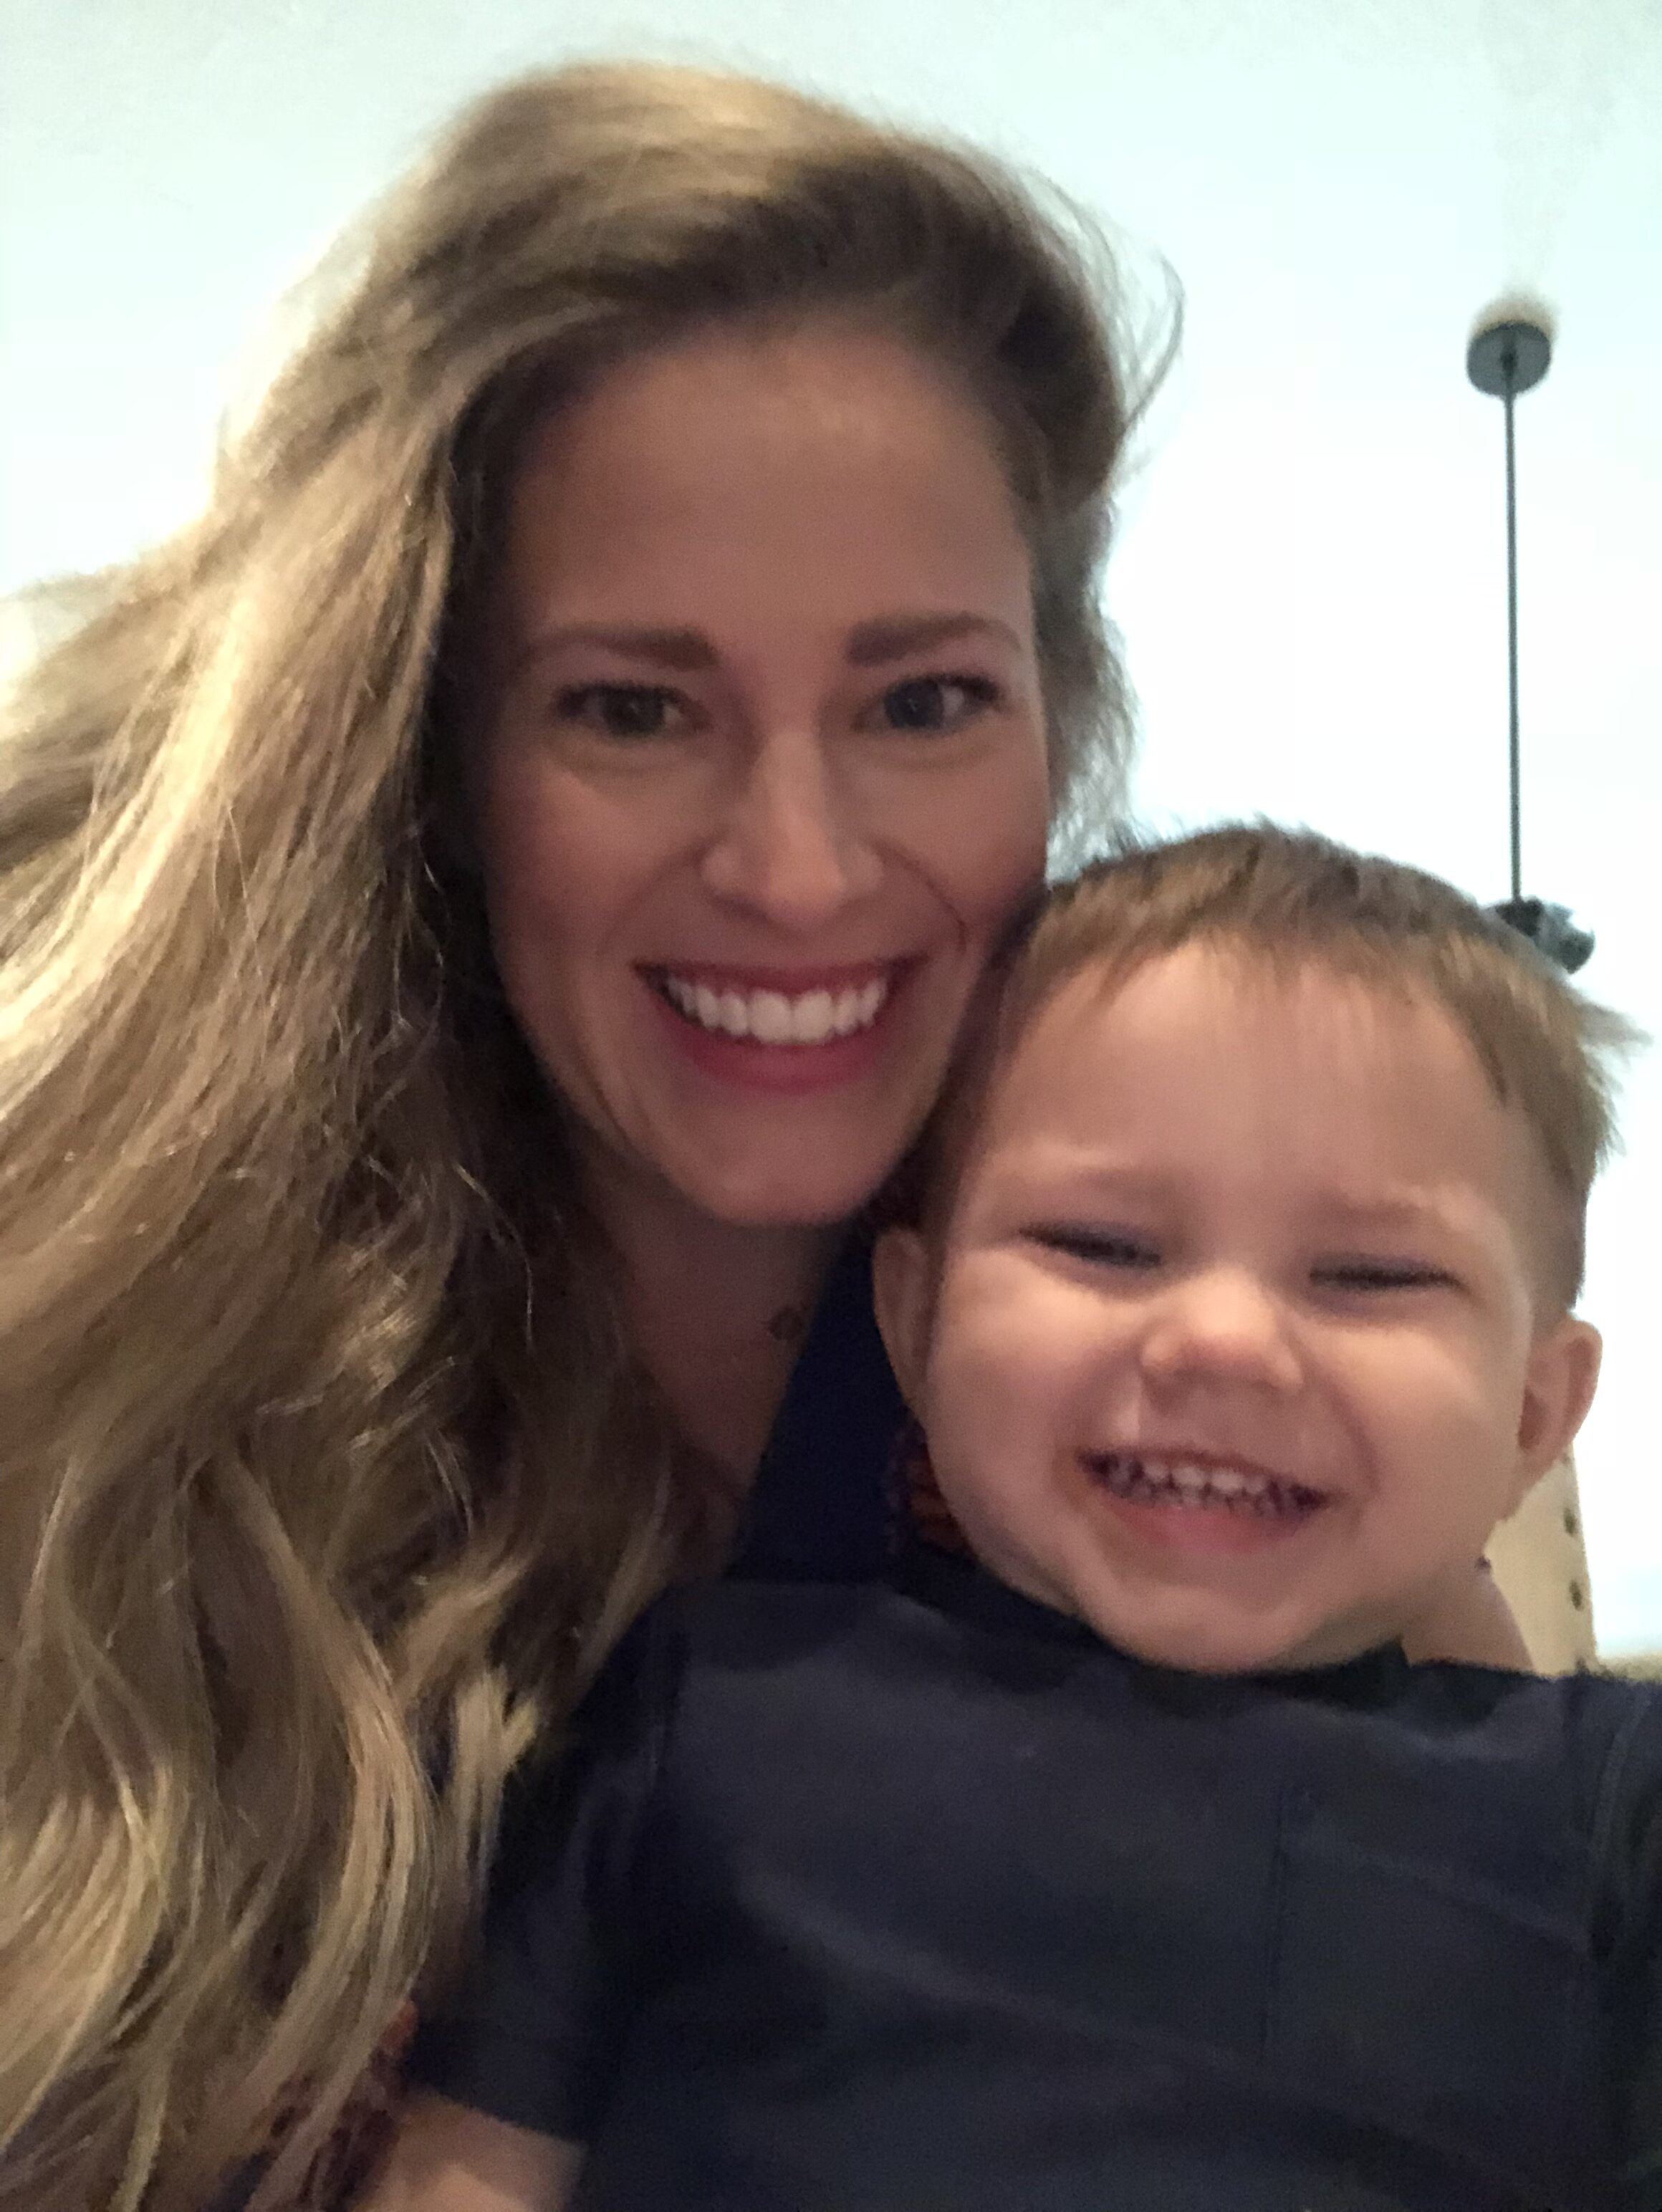 Mom and son smiling, color photo